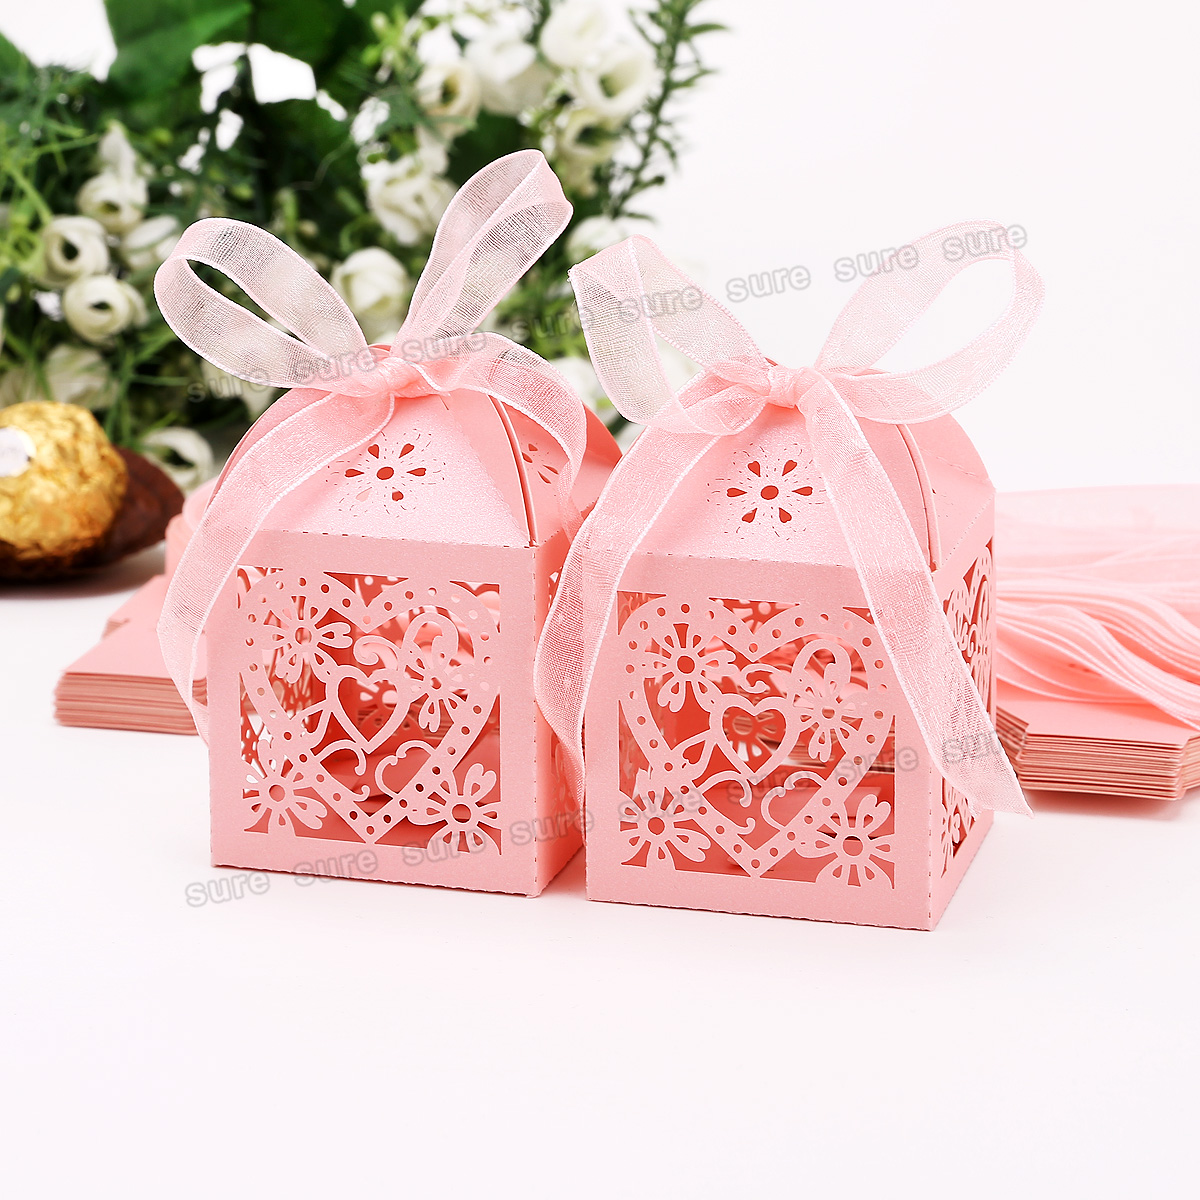 chocolate wedding favors uk - 28 images - luxury wedding favour ...